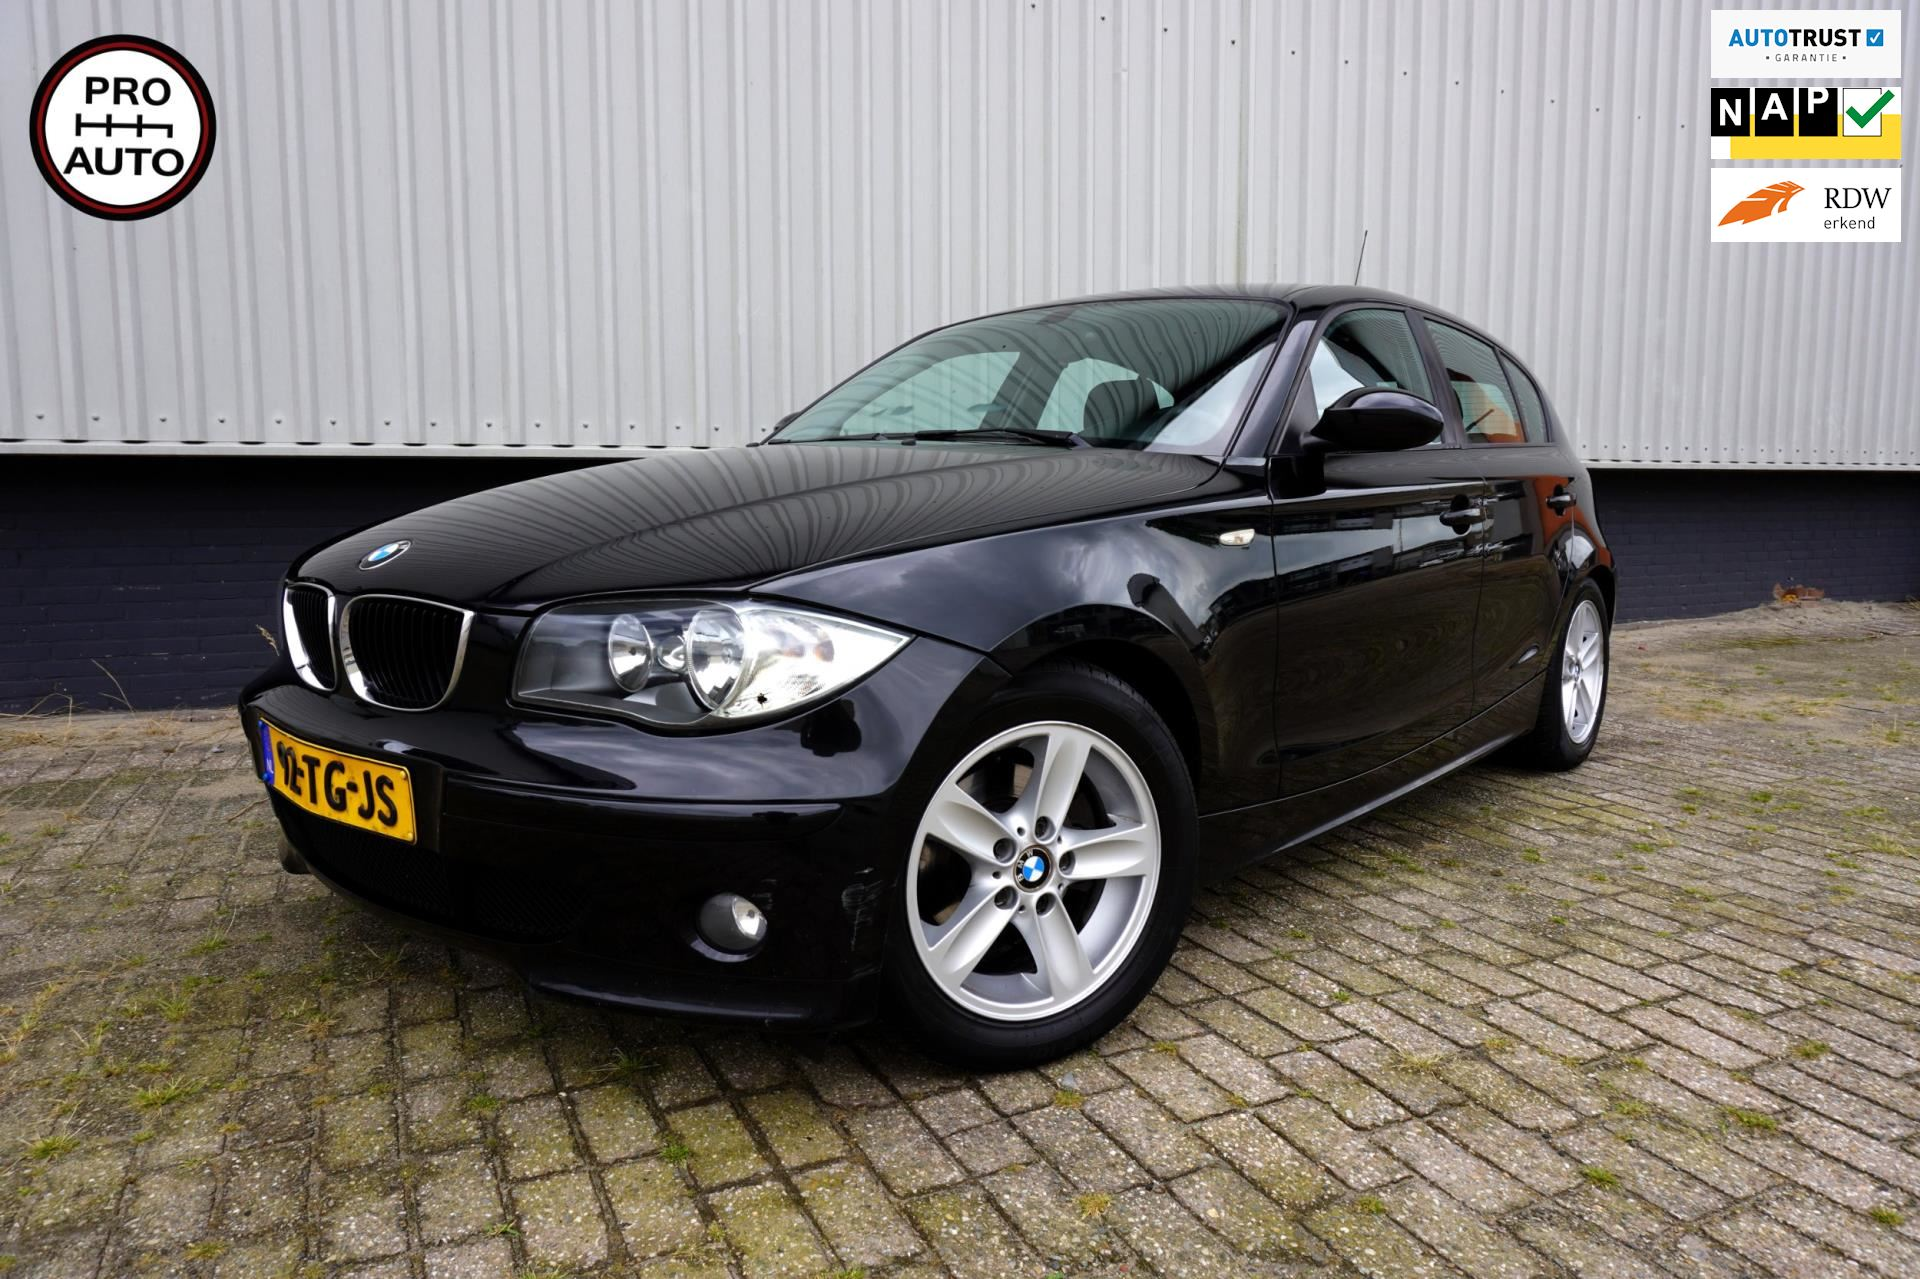 BMW 1-serie occasion - Proautoverkoop